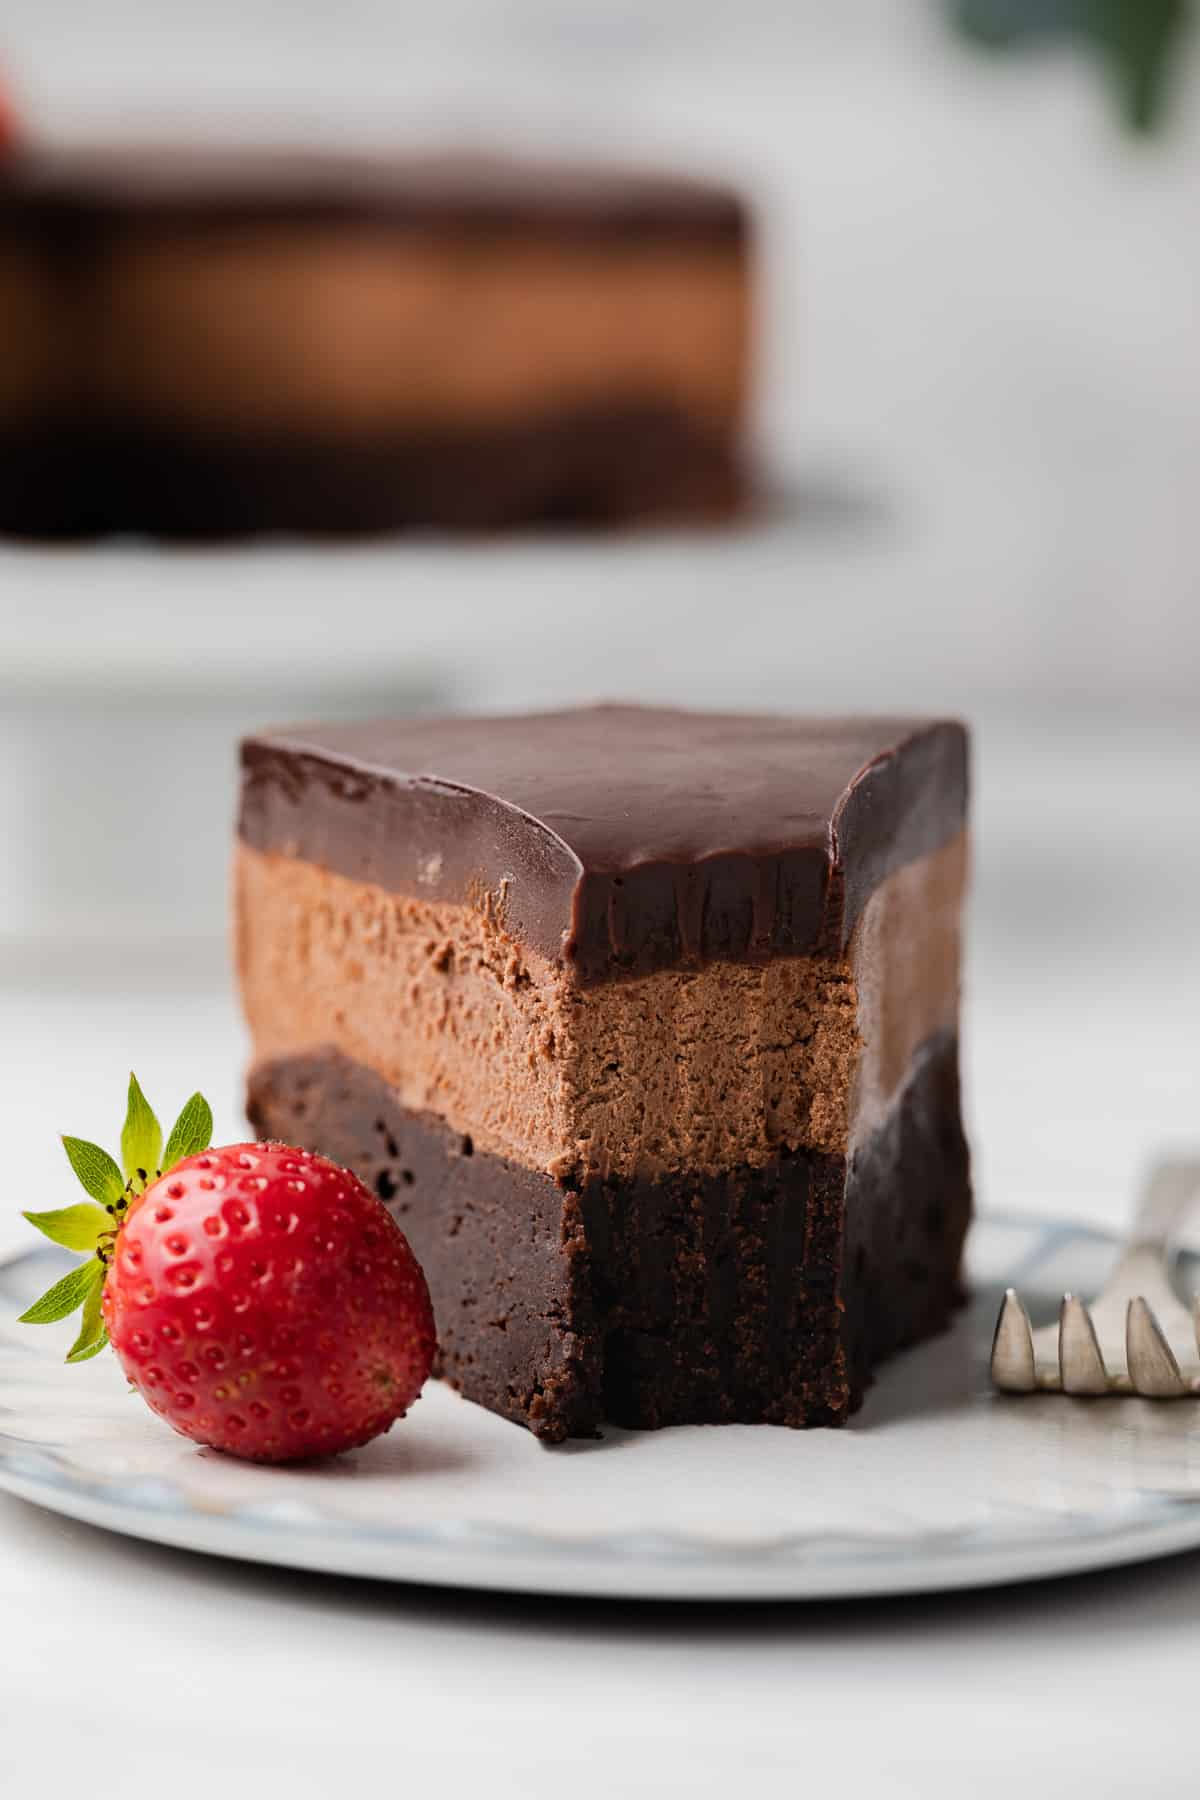 Slice of three layer mousse cake on white plate with a bite taken out.